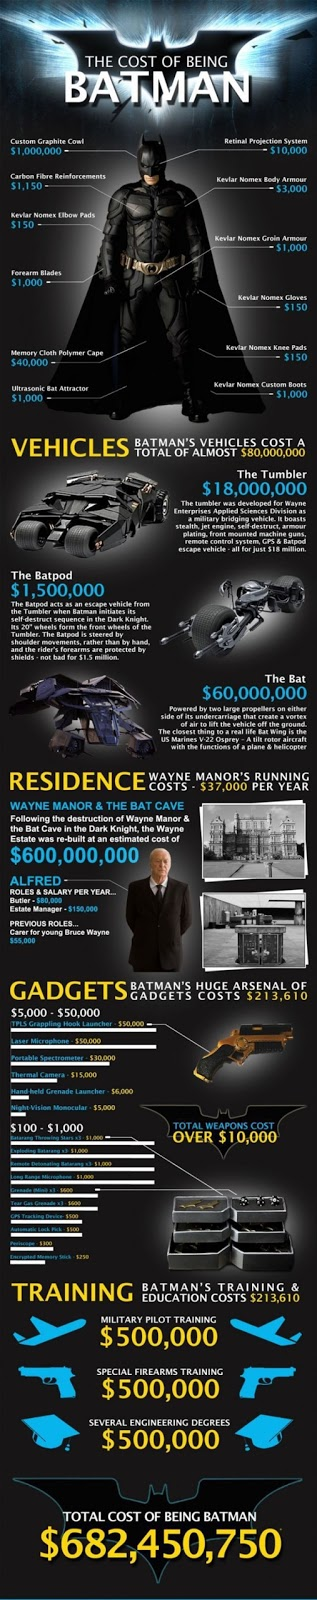 Cost of Being Batman is $682,450,750